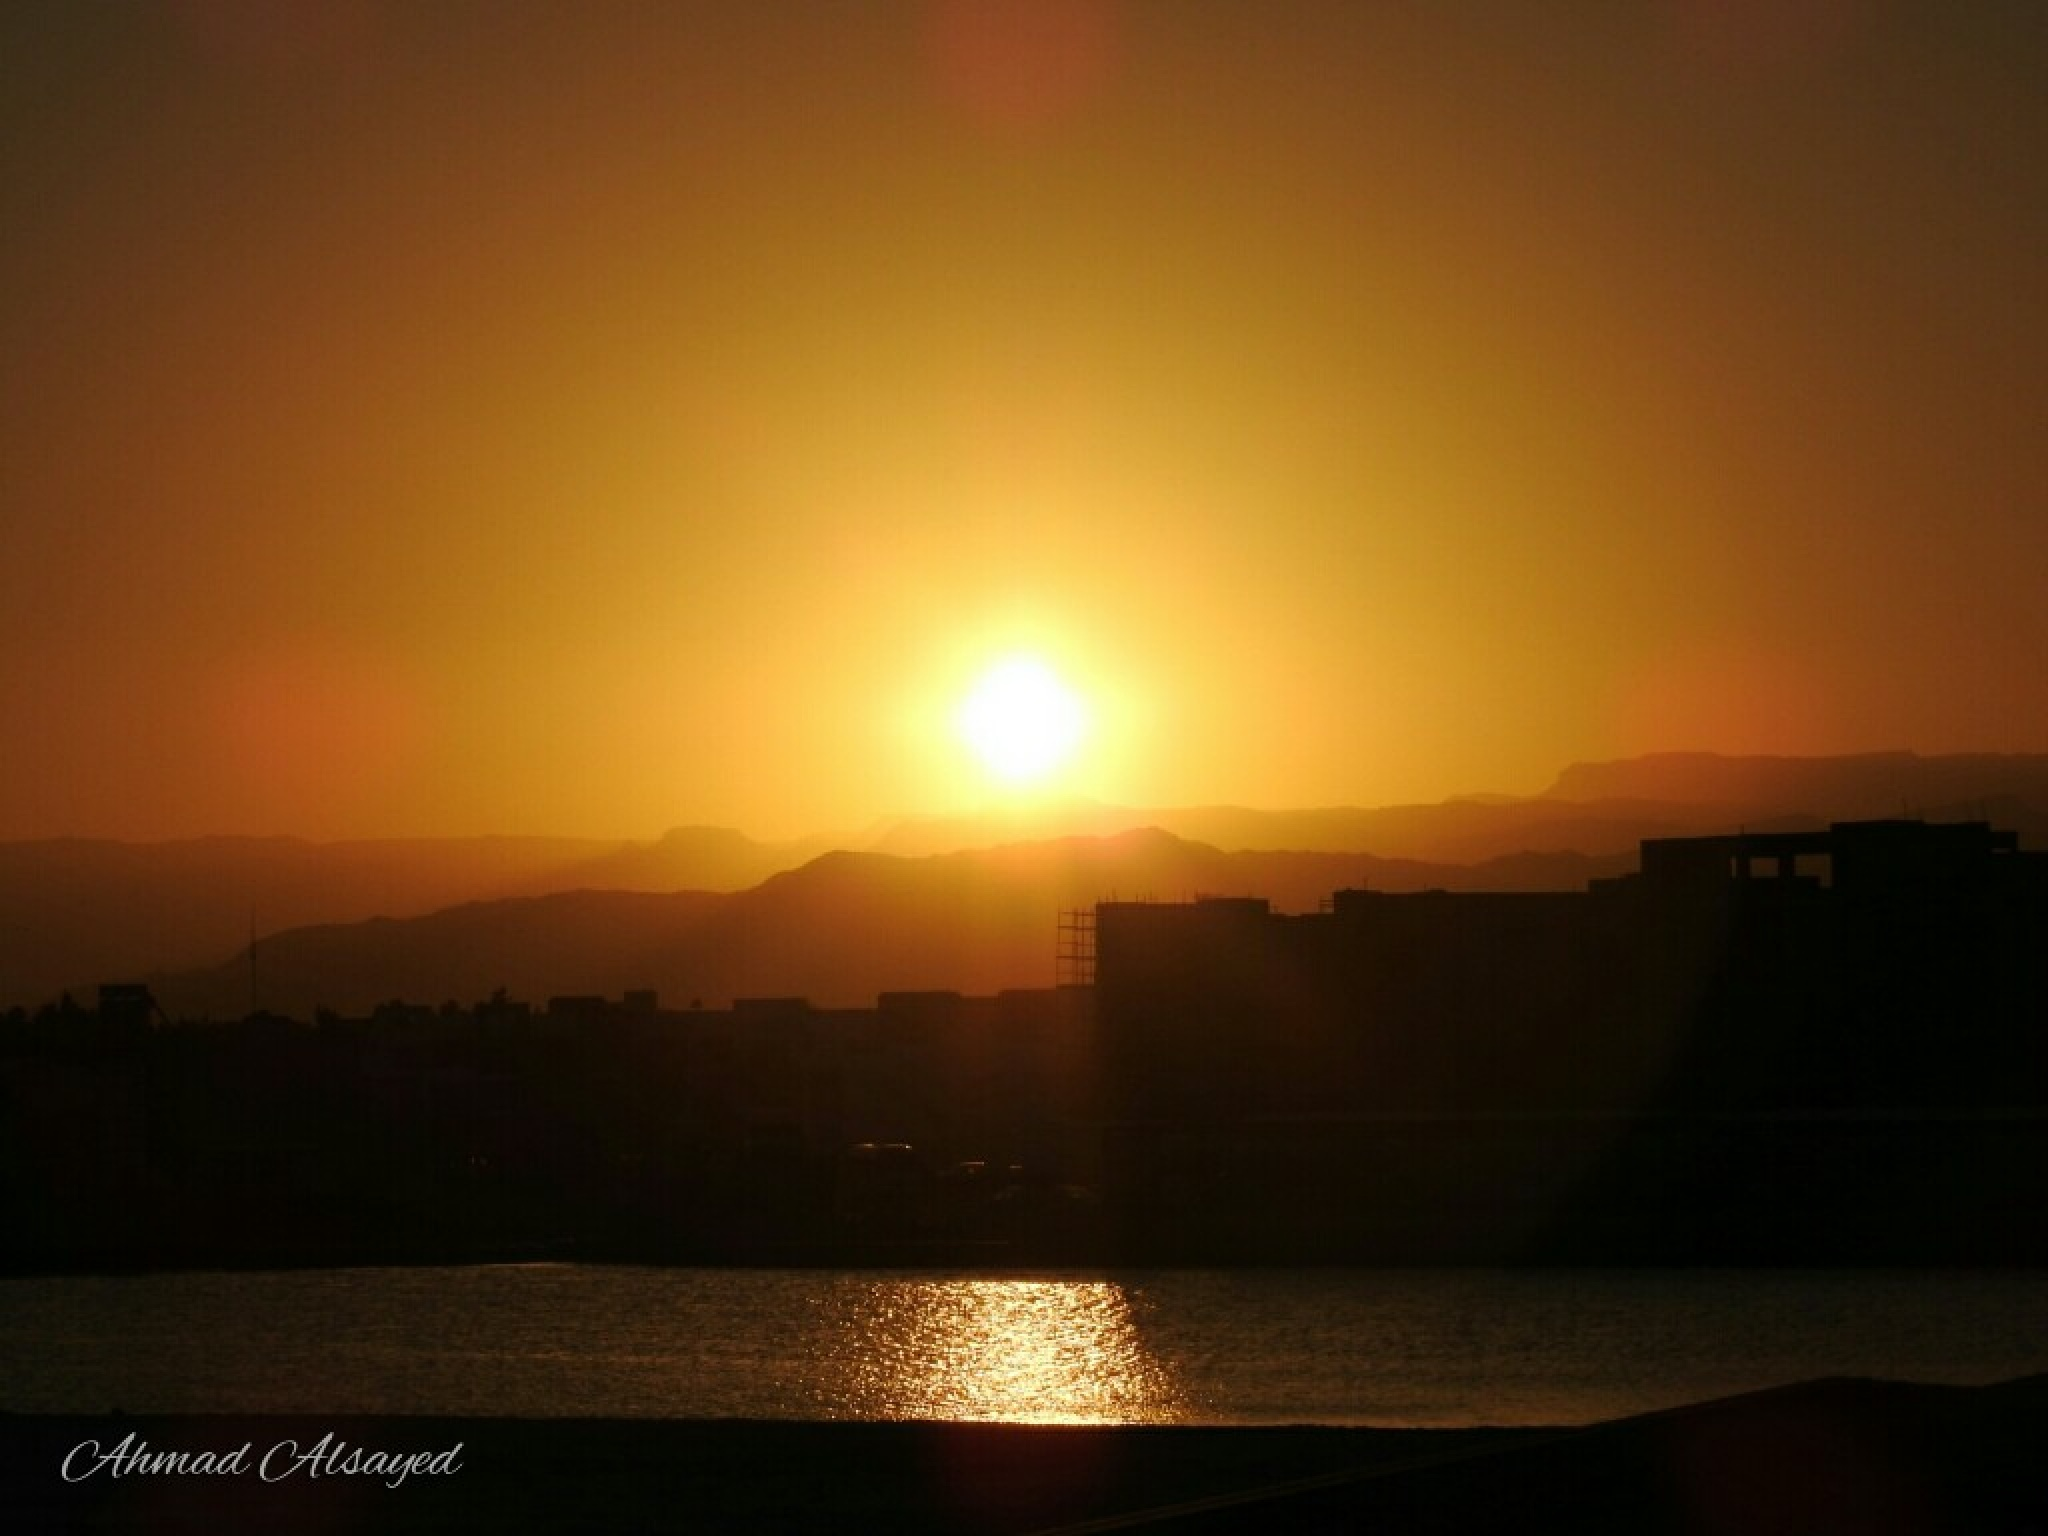 Untitled by Ahmad Alsayed